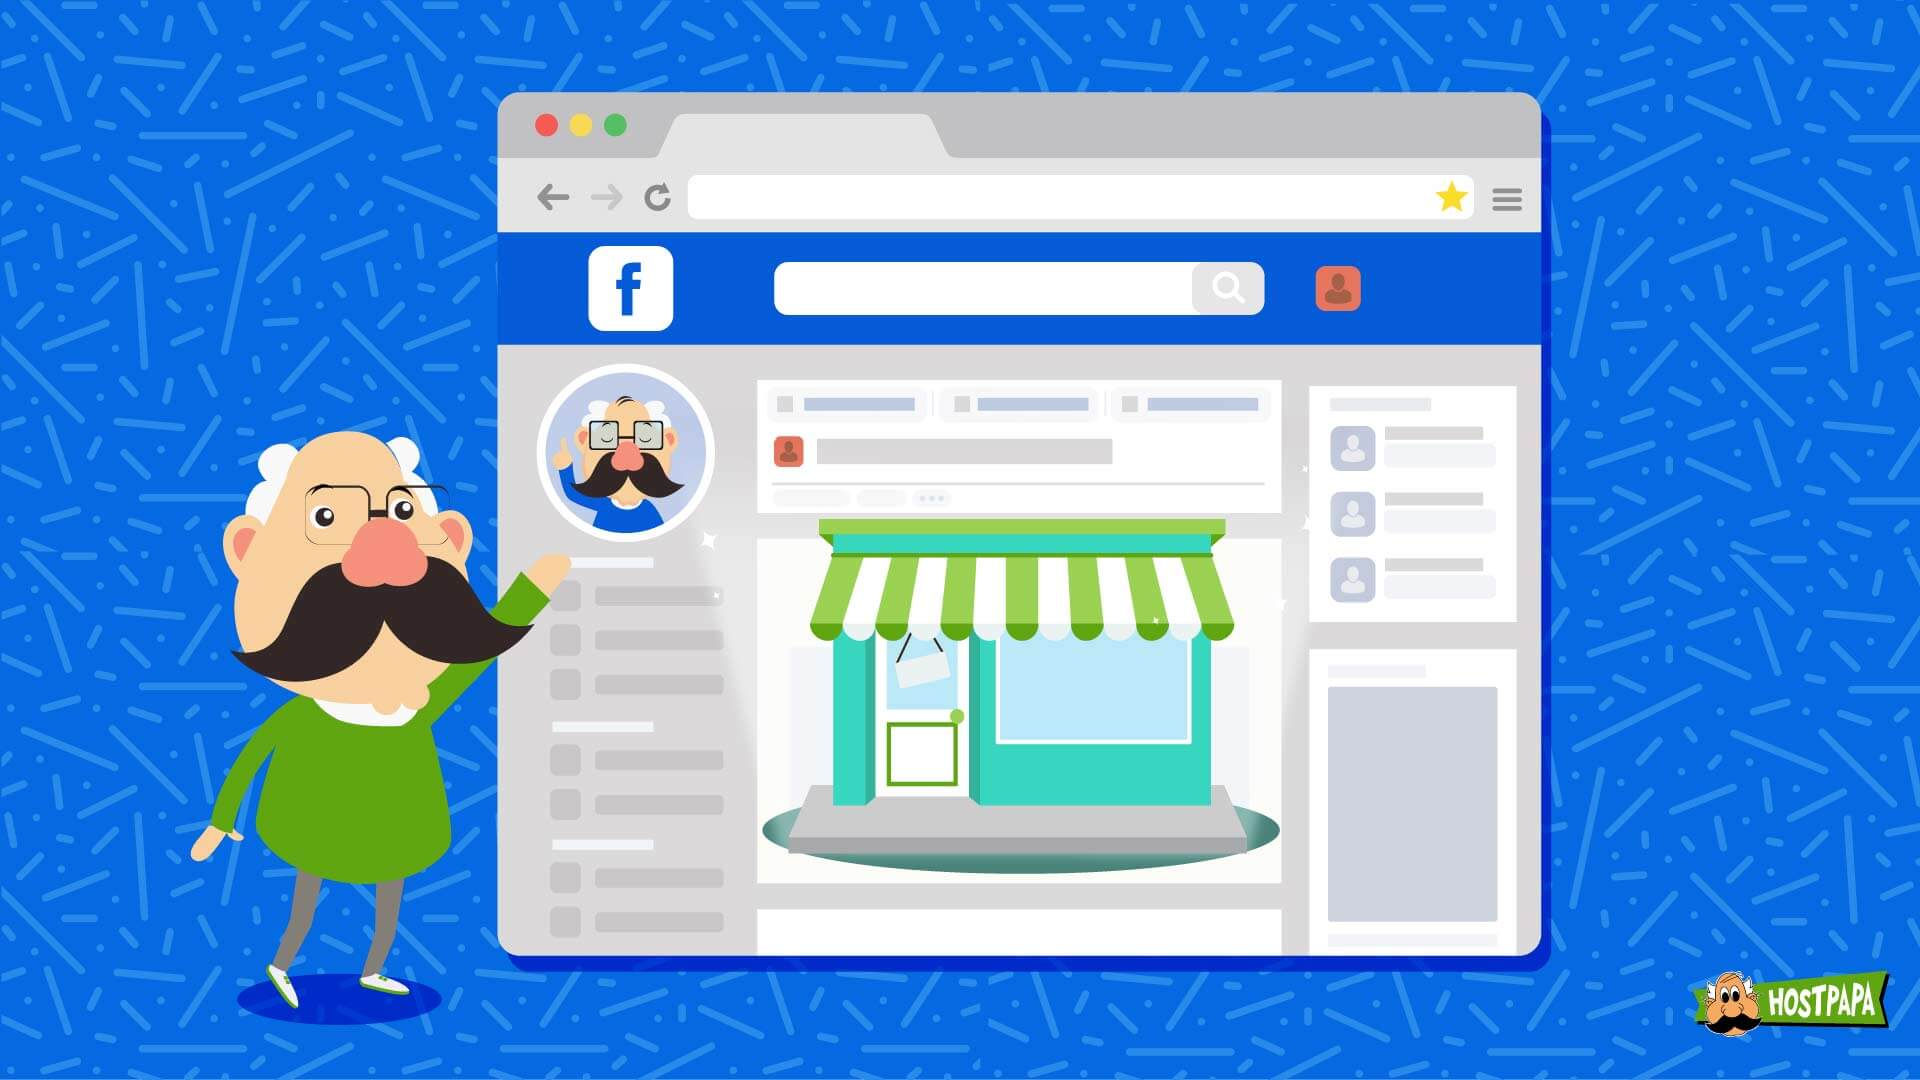 Facebook Marketing Trends for Small Business in 2020